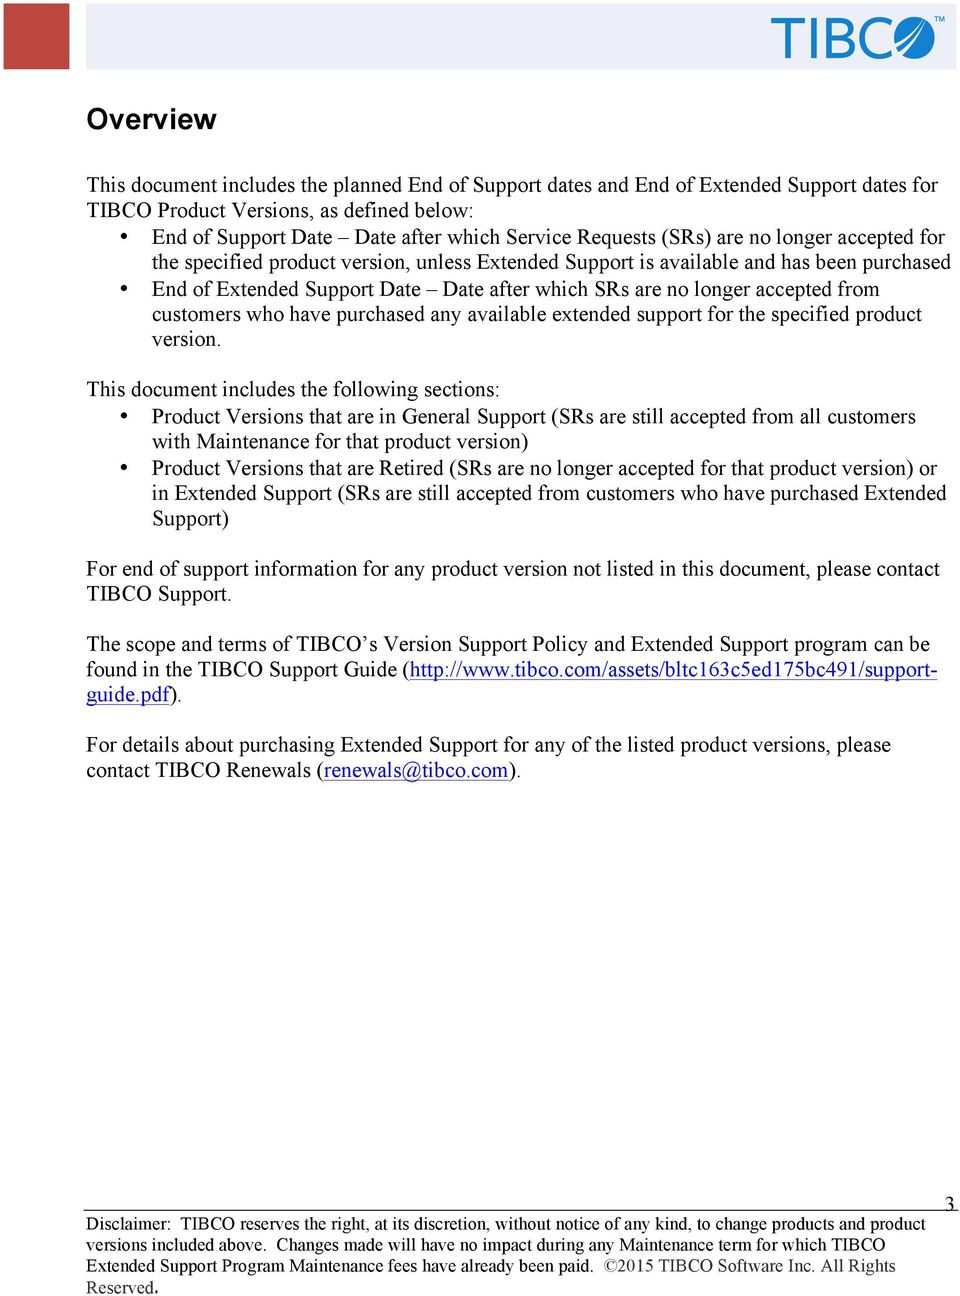 end of support information for tibco product versions pdf rh docplayer net TIBCO BW TIBCO Logo